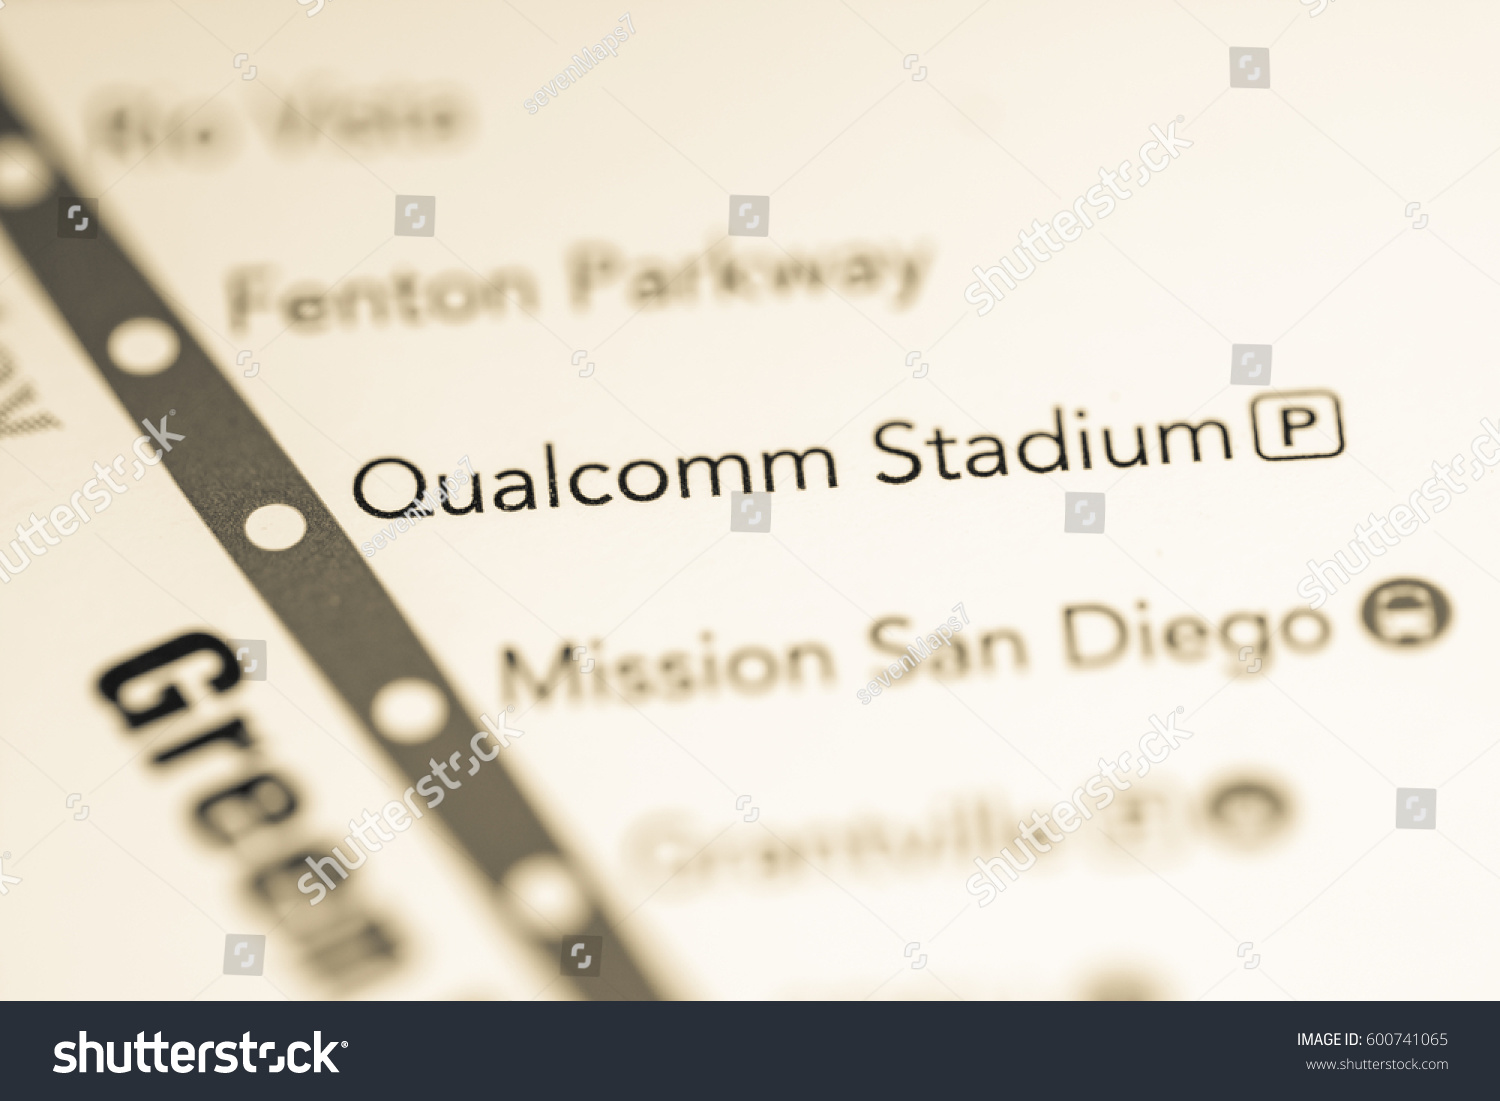 San Diego Subway Map.Qualcomm Stadium Station San Diego Metro Stock Photo Edit Now